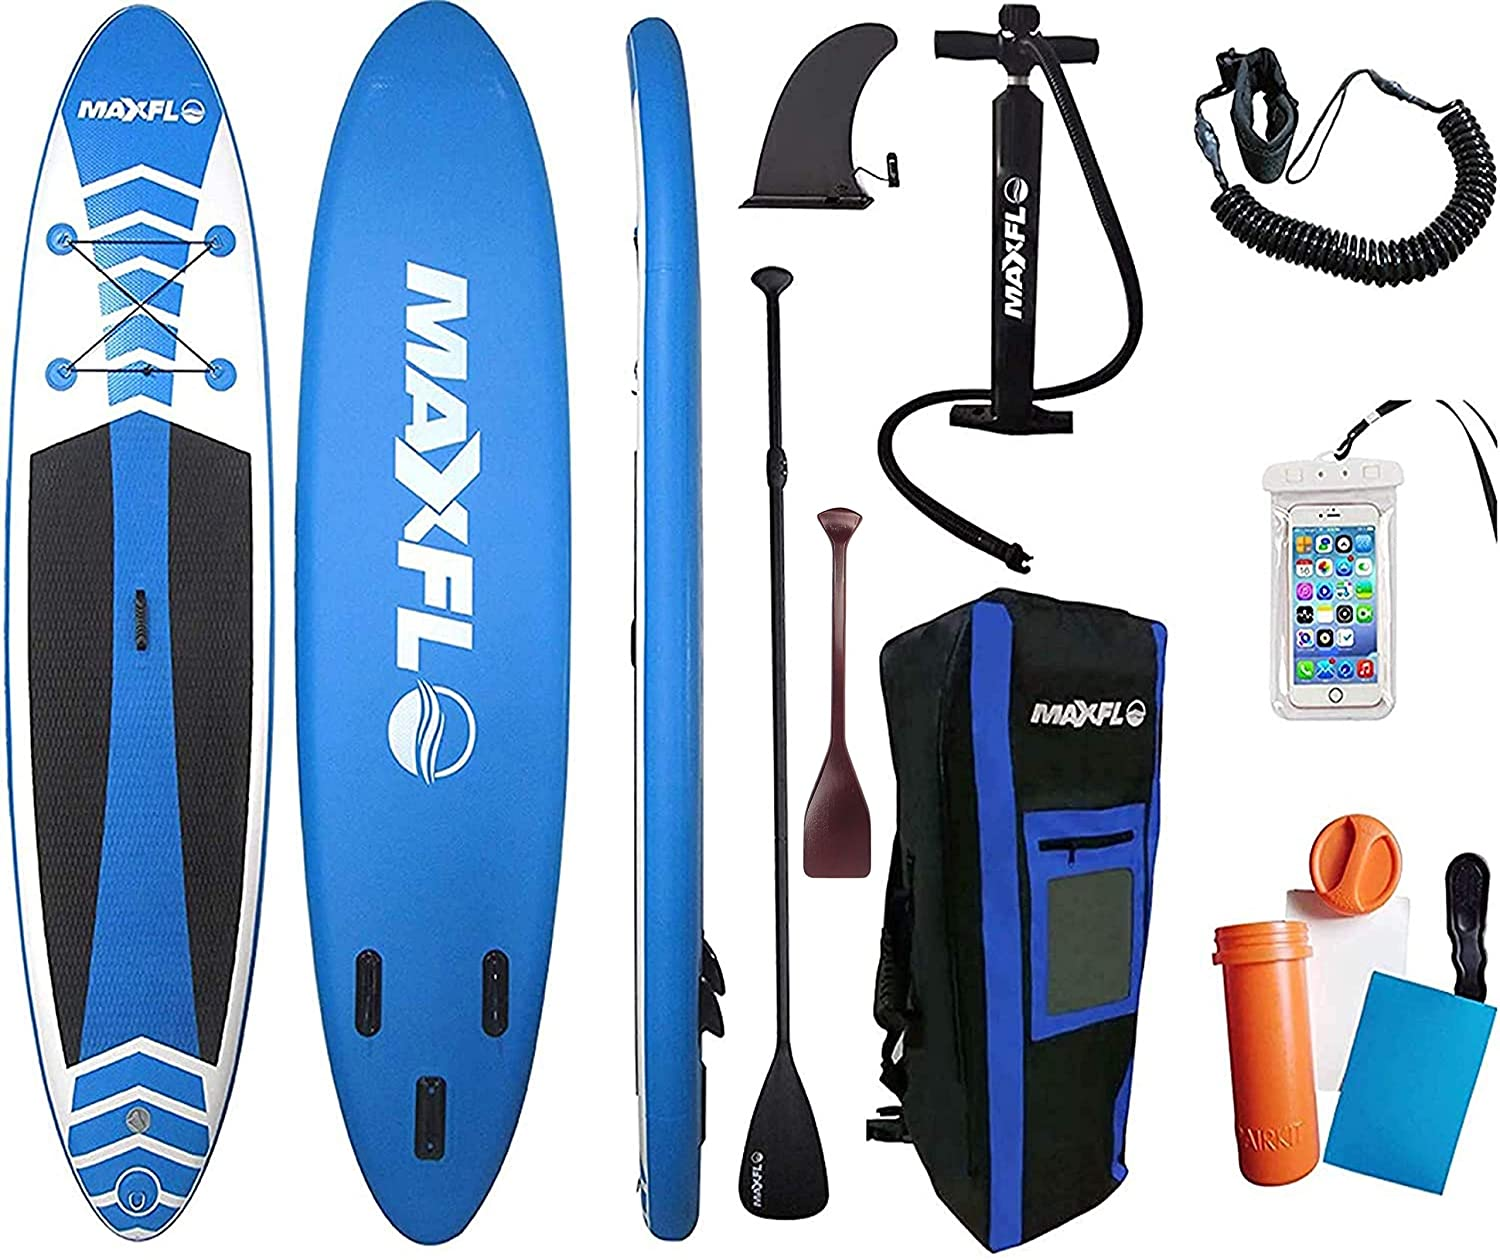 Maxflo Paddle Board Review